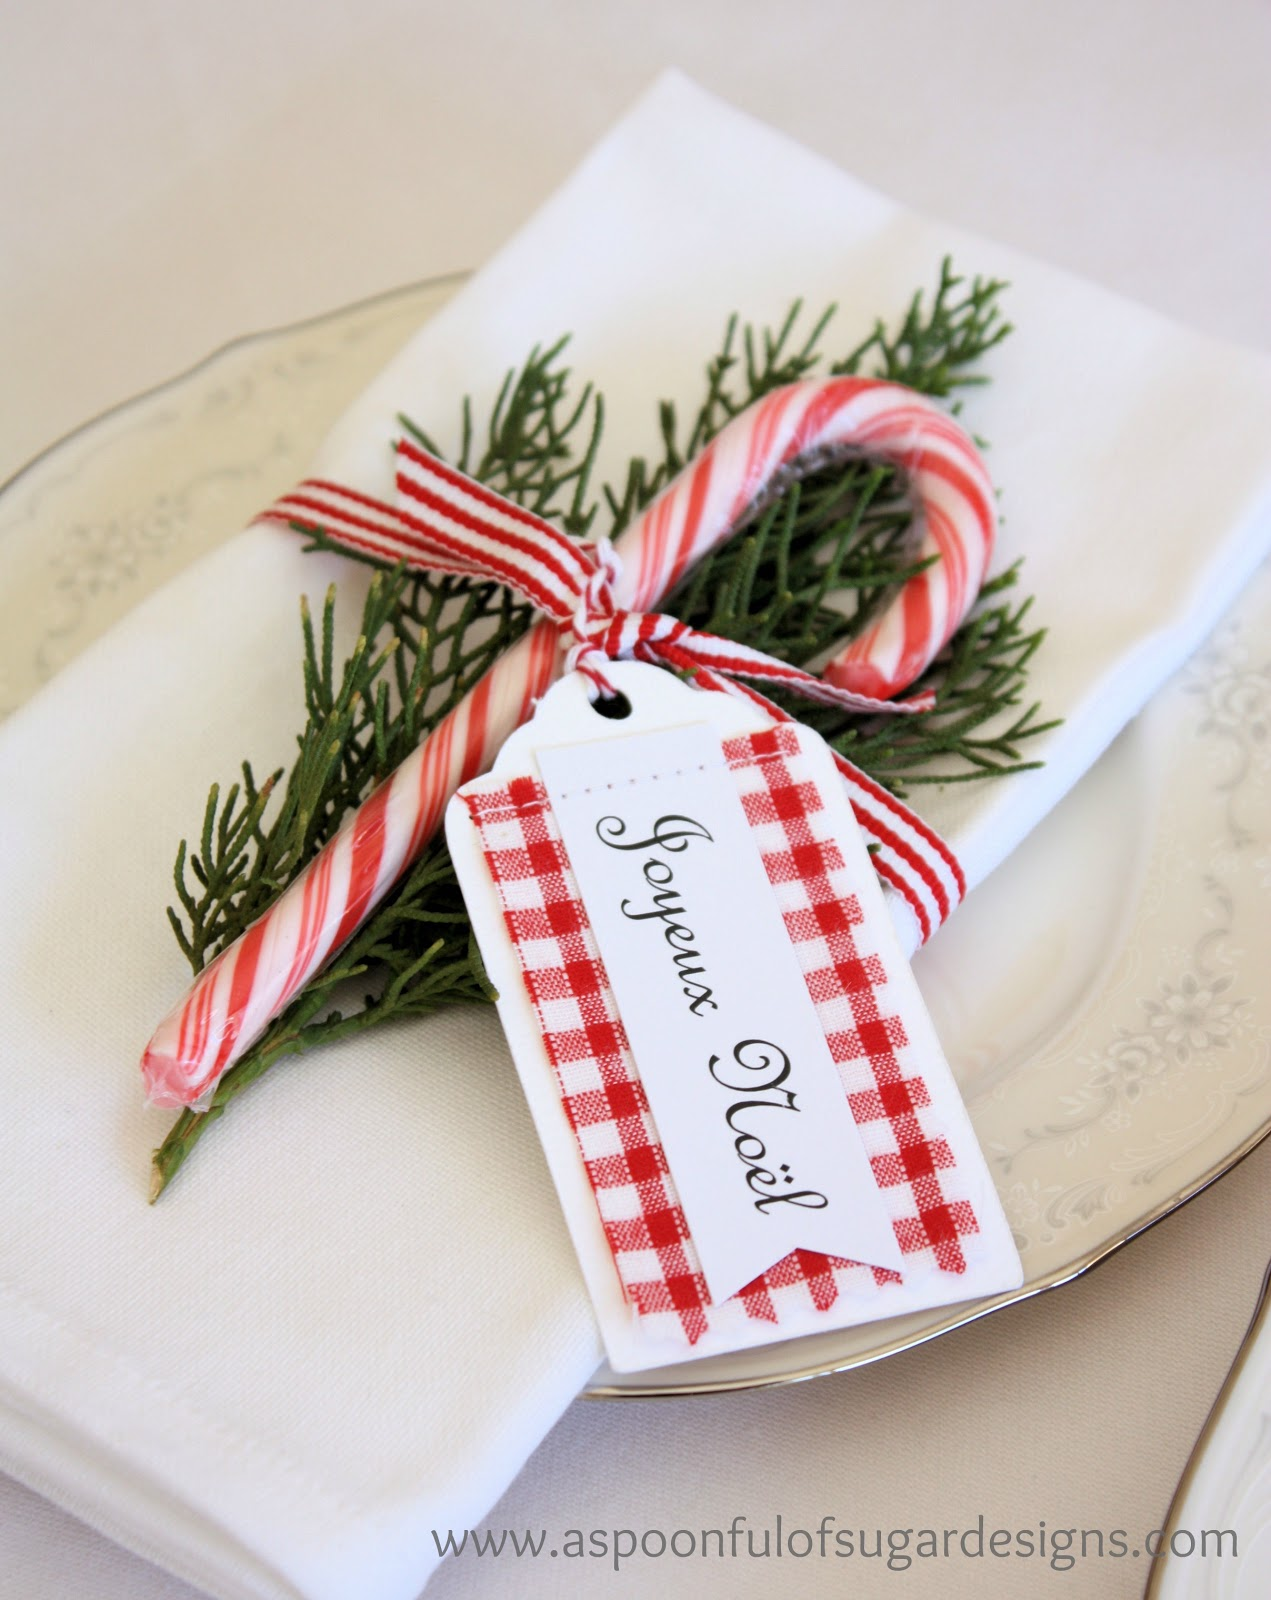 15 Christmas Table Settings to Win You Best Host images 10